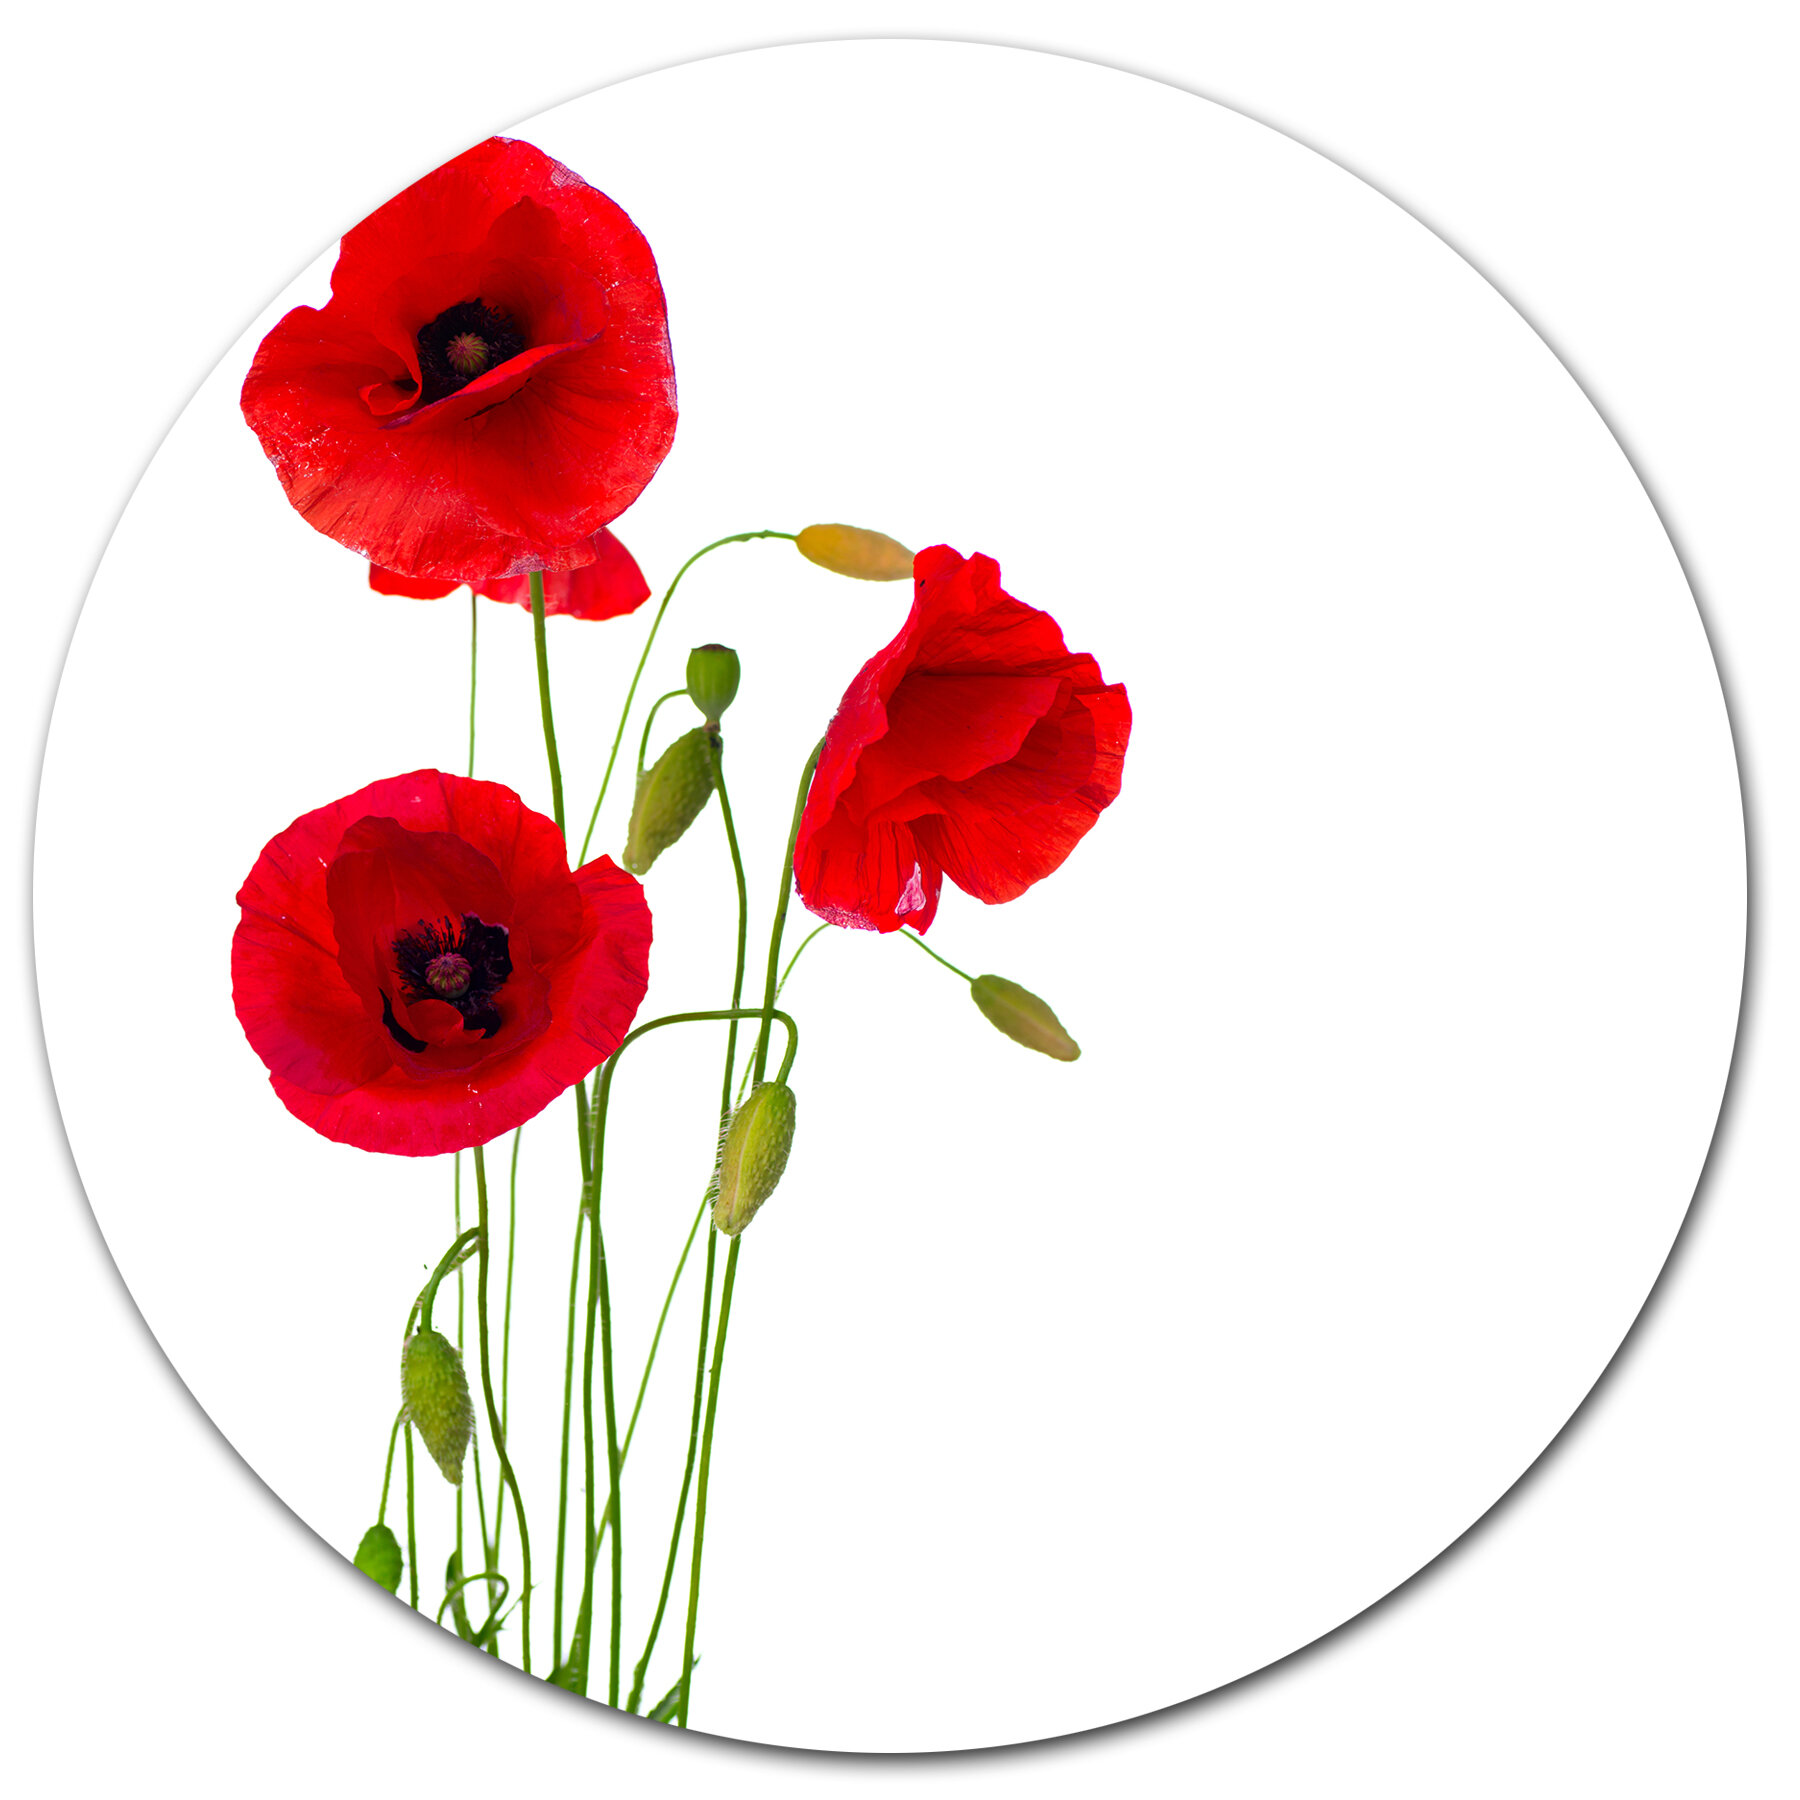 Designart Isolated Red Poppy Flowers Graphic Art Print On Metal